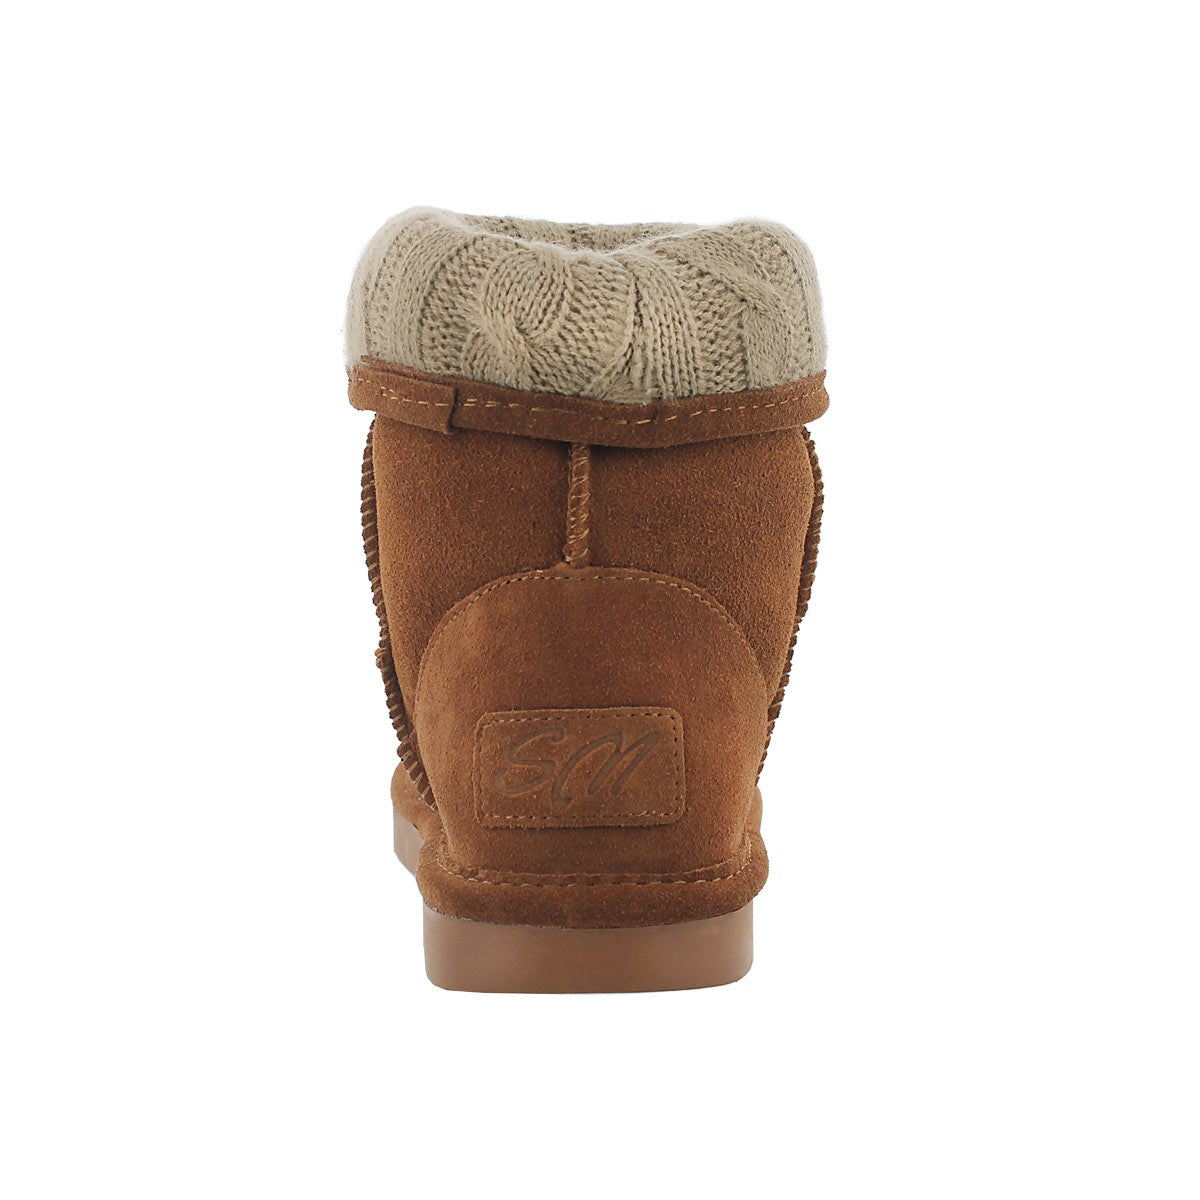 Lds Smocs Cuff spice suede boot